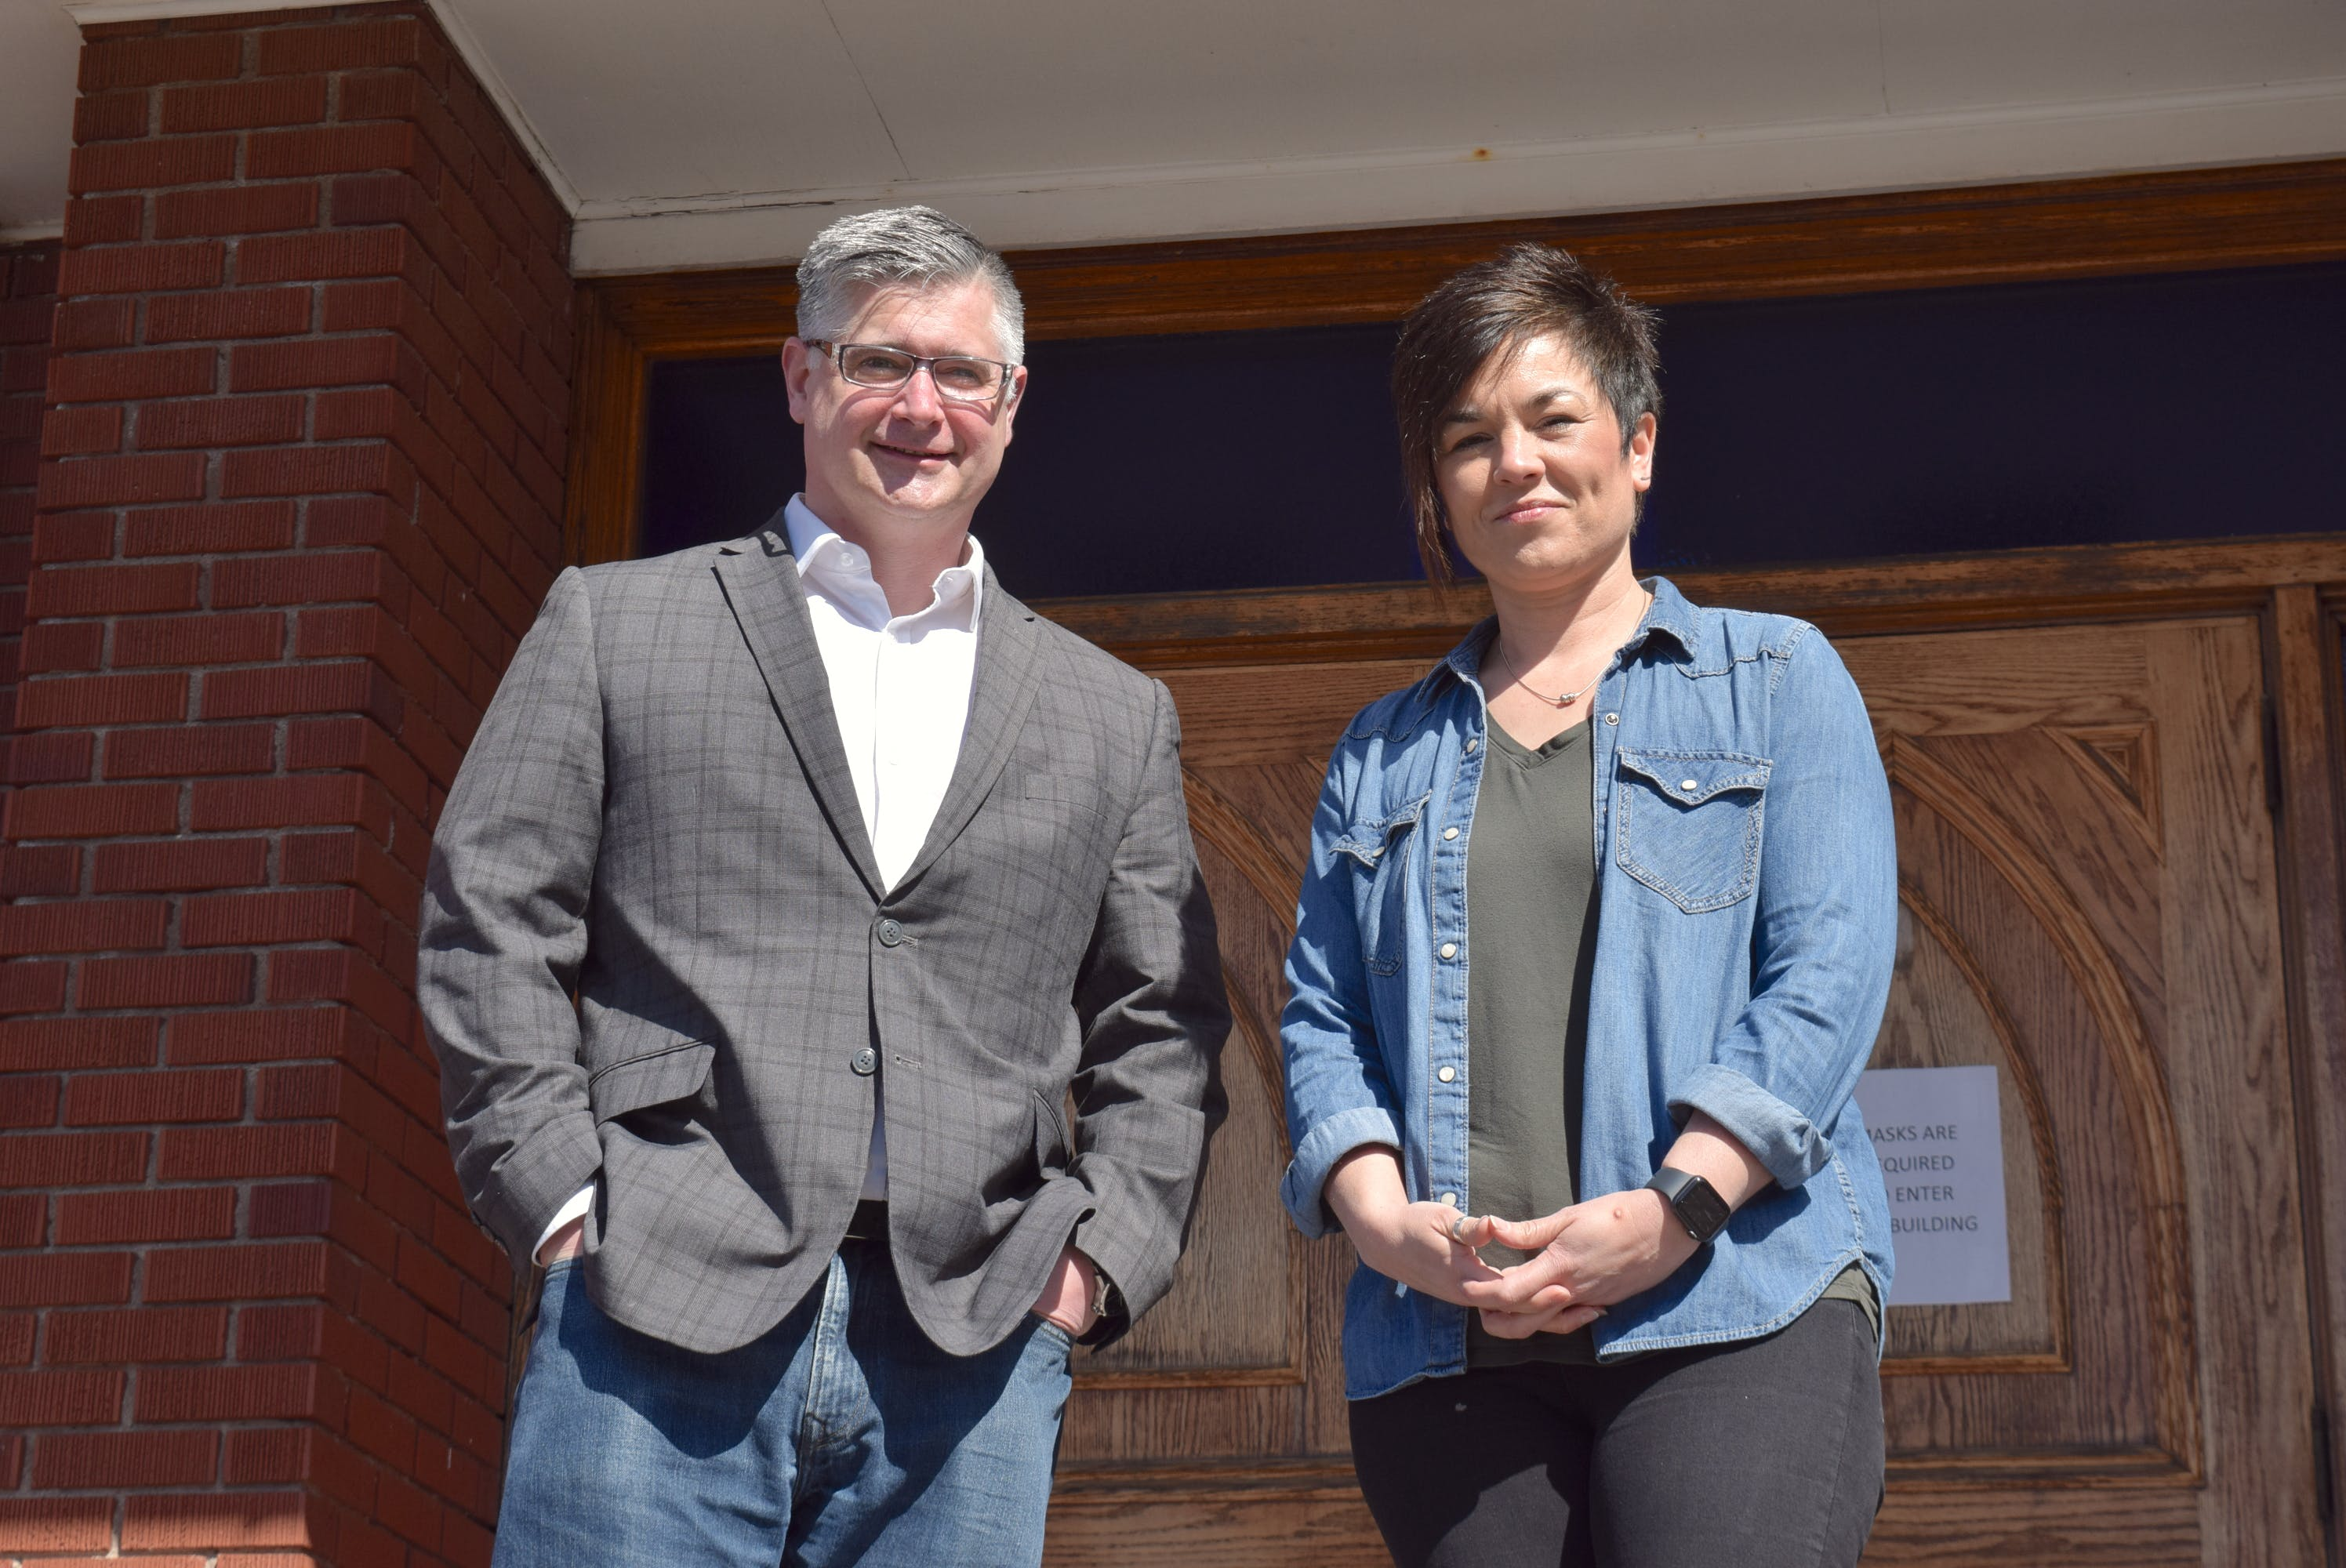 """Rev. Paul Worden of First Baptist Truro, left, and Pastor Tammy Giffin of Groundswell Church, have been friends """"for a long time."""" That relationship has afforded them the opportunity to have conversations others might not have, said Giffin."""